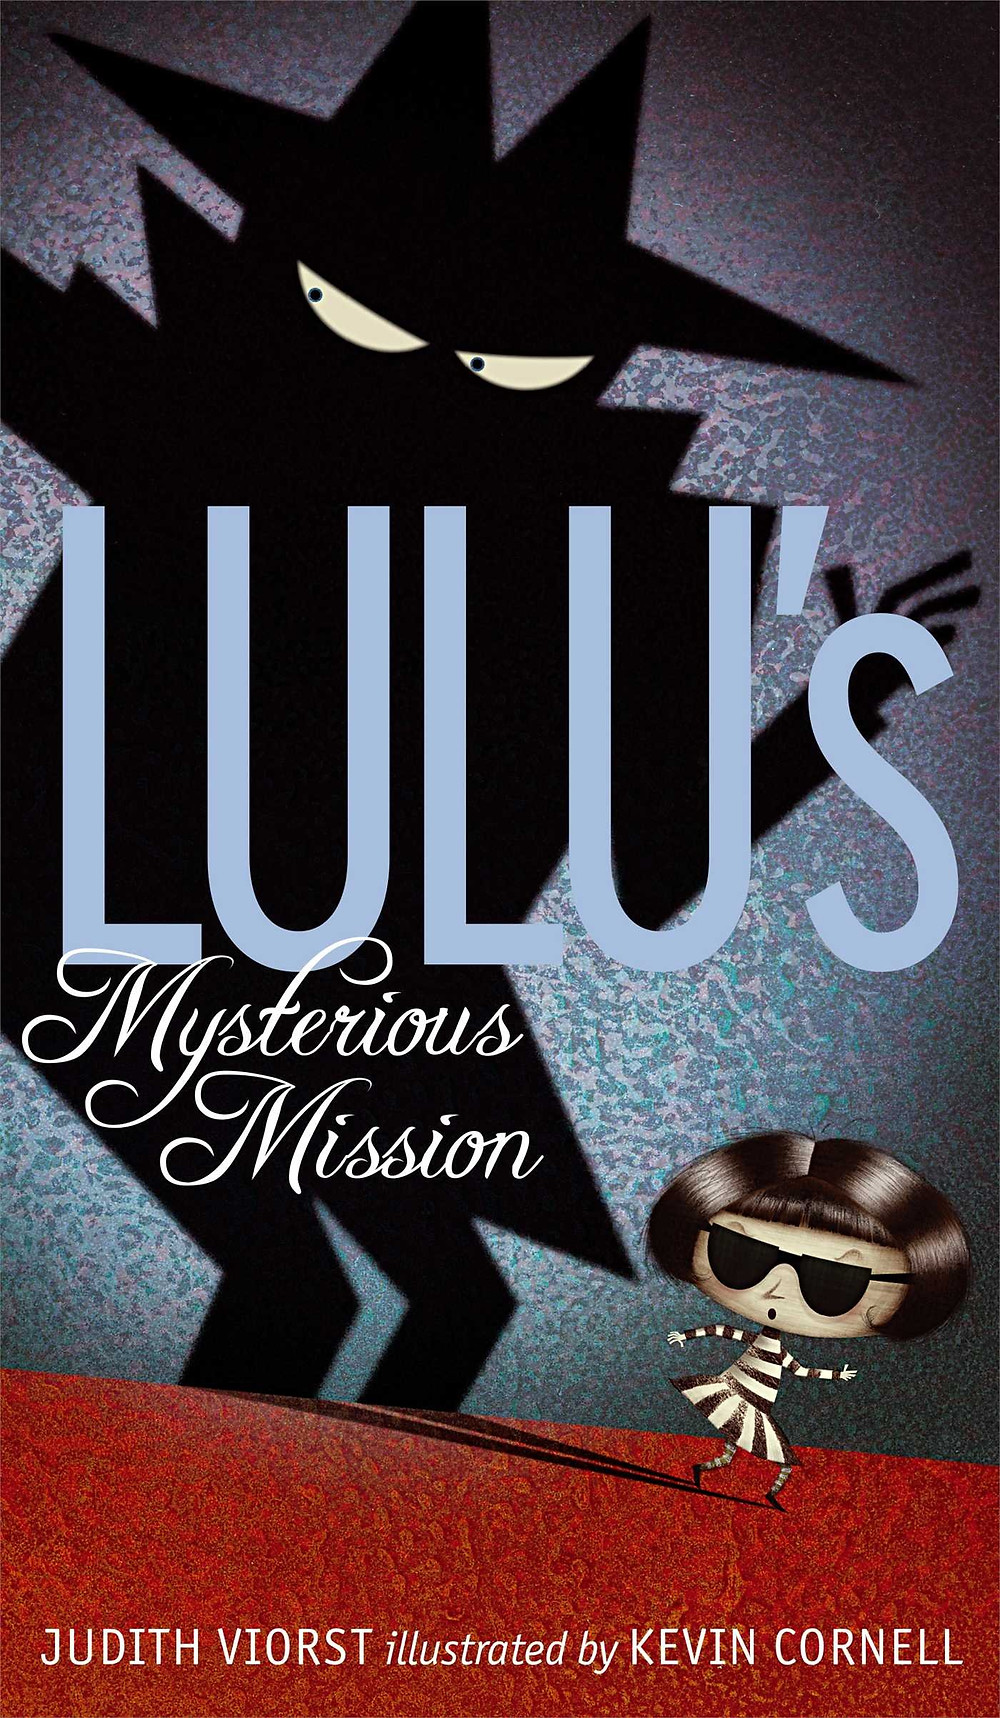 Lulu's Mysterious Mission by Judith Viorst